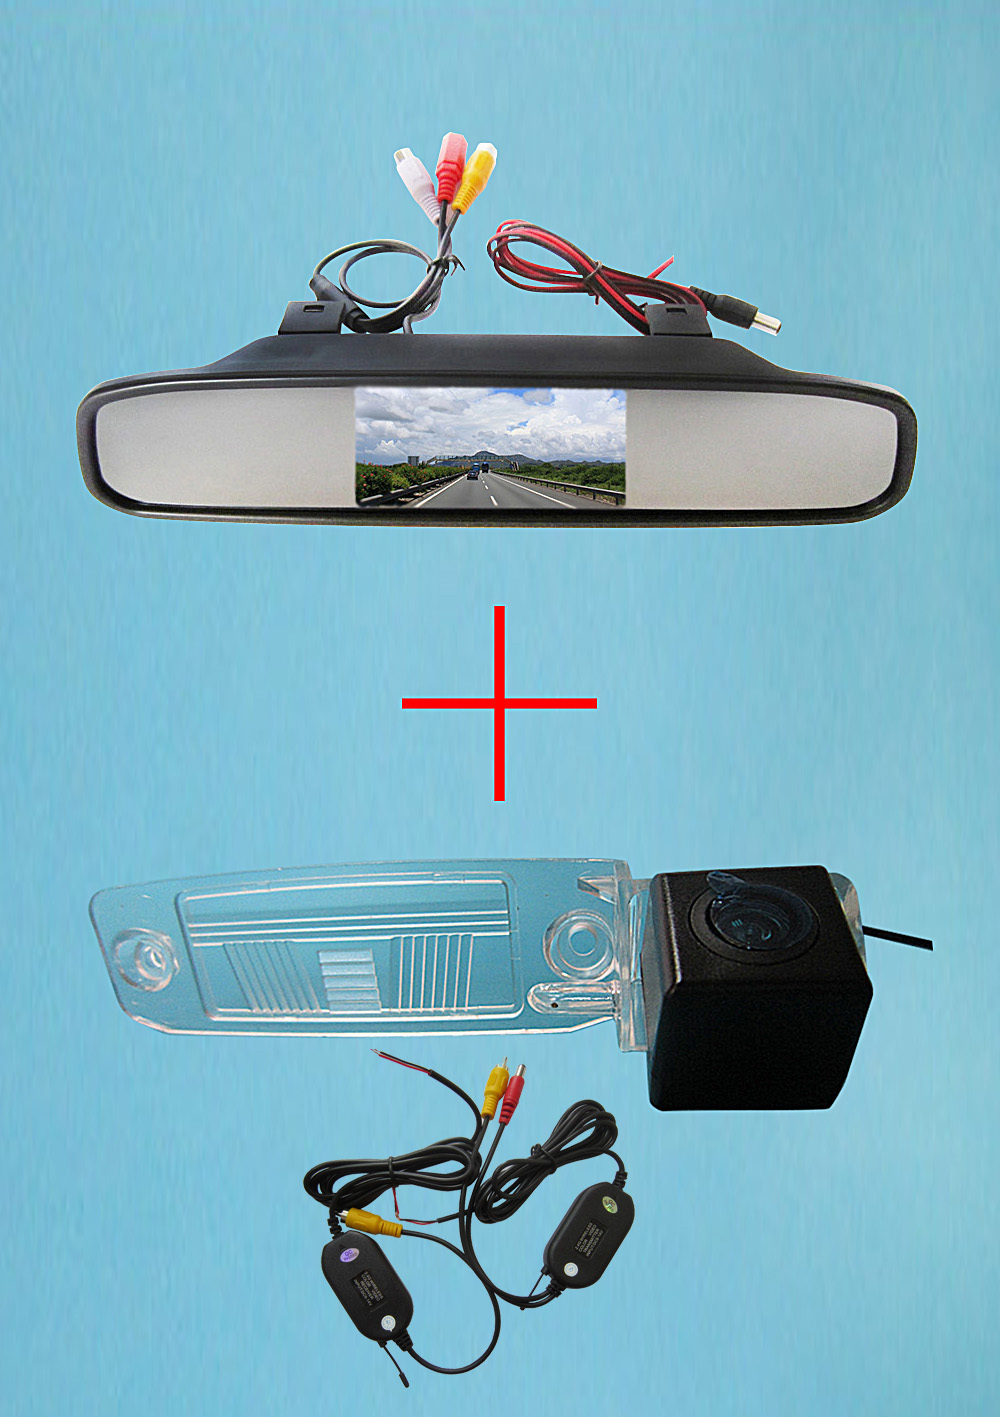 Wireless Color CCD Car Rear View backup waterproof Camera <font><b>for</b></font> <font><b>KIA</b></font> SPORTAGE R 2010-2014,with 4.3 Inch Rear view Mirror <font><b>Monitor</b></font>